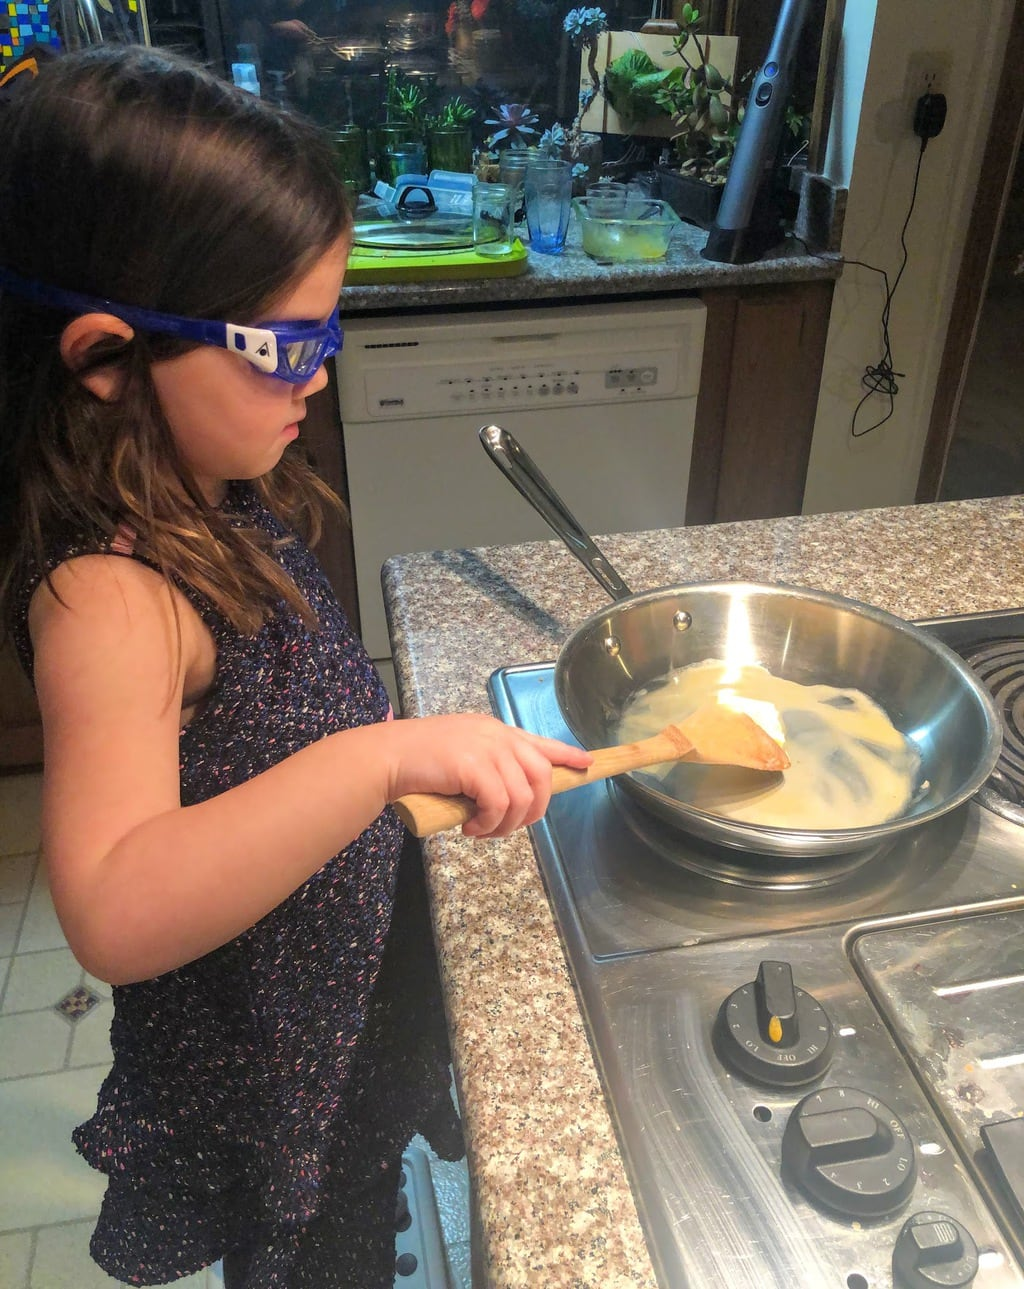 Child Melting butter in pan